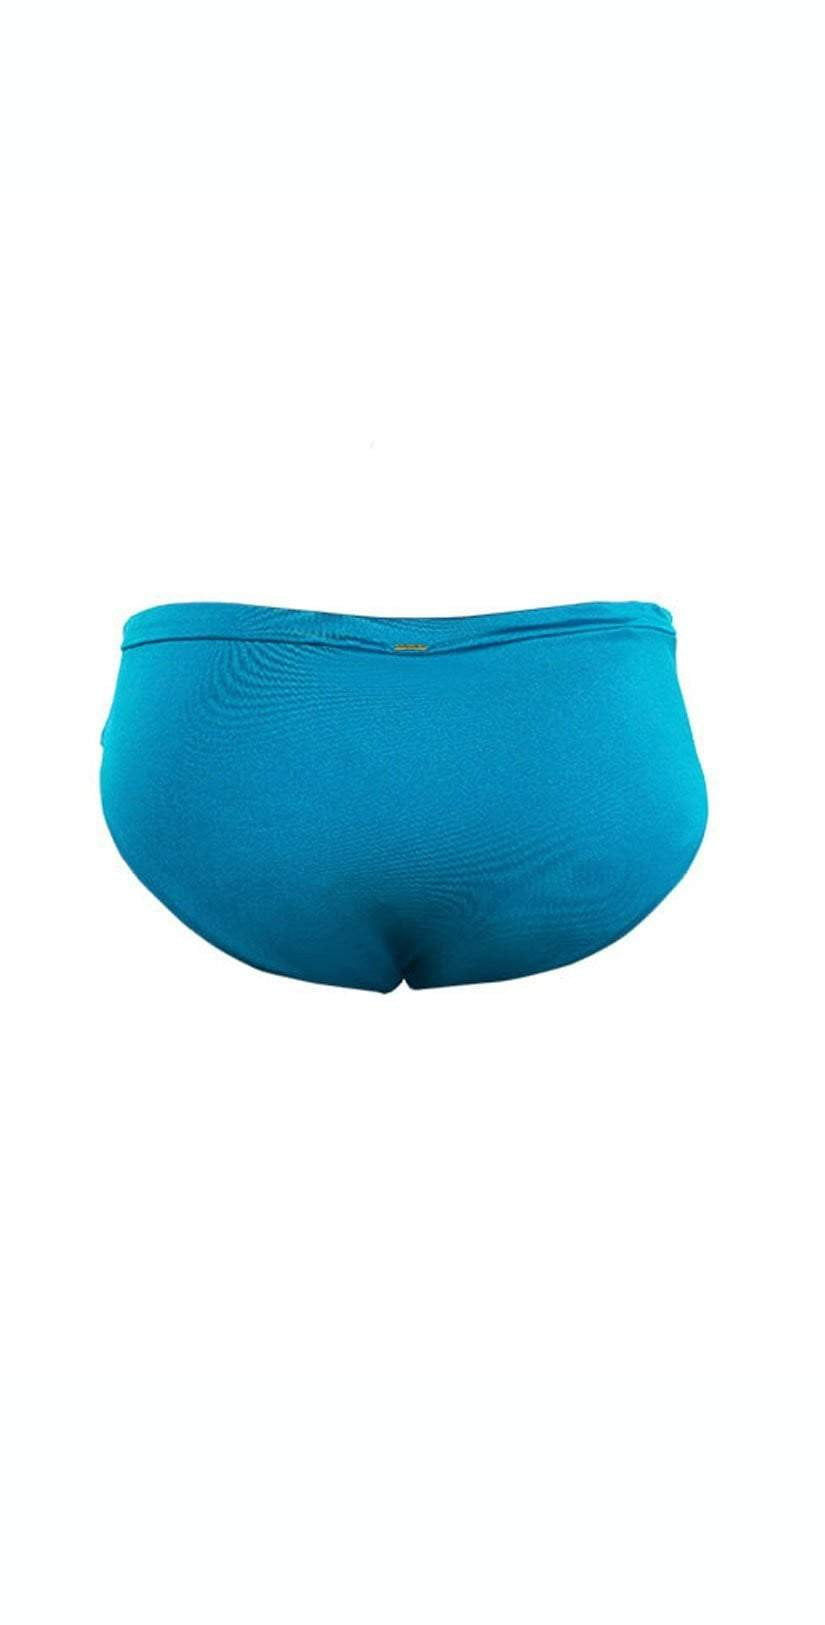 Boamar Opal Cheeky Bottom In Blue BC0032-BLU: